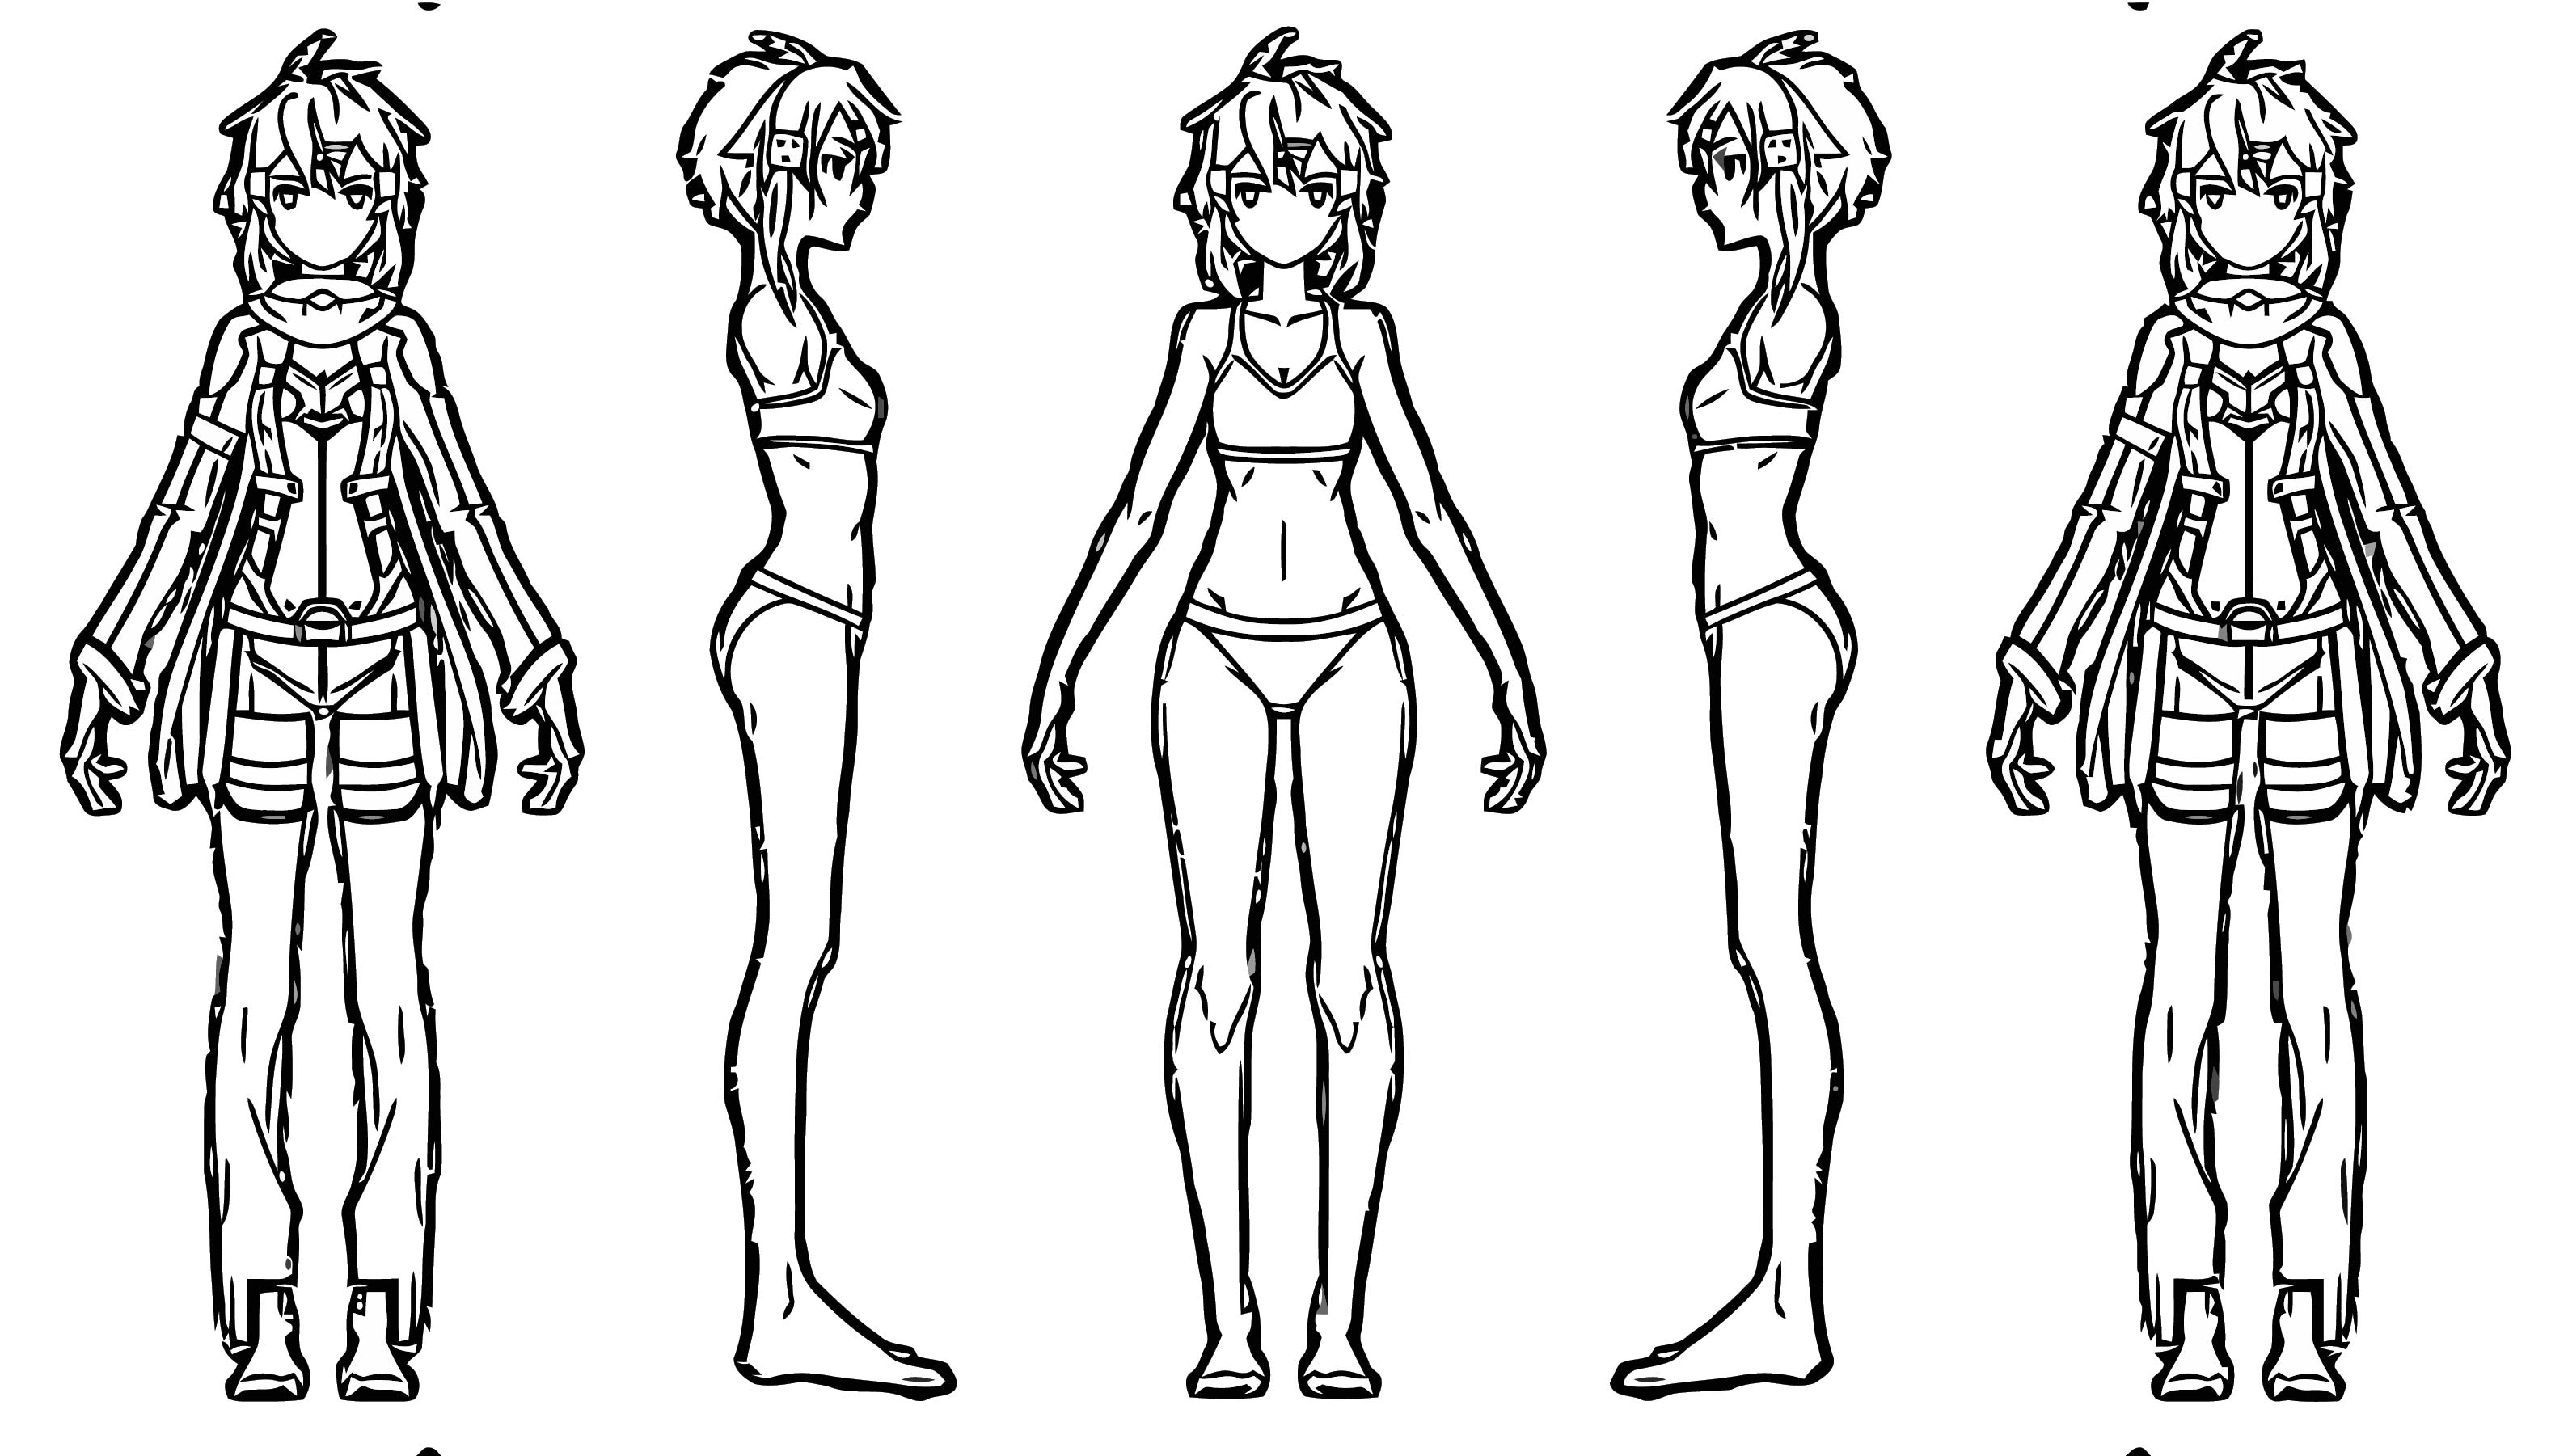 Sinon Charactersheet Cartoon Coloring Page